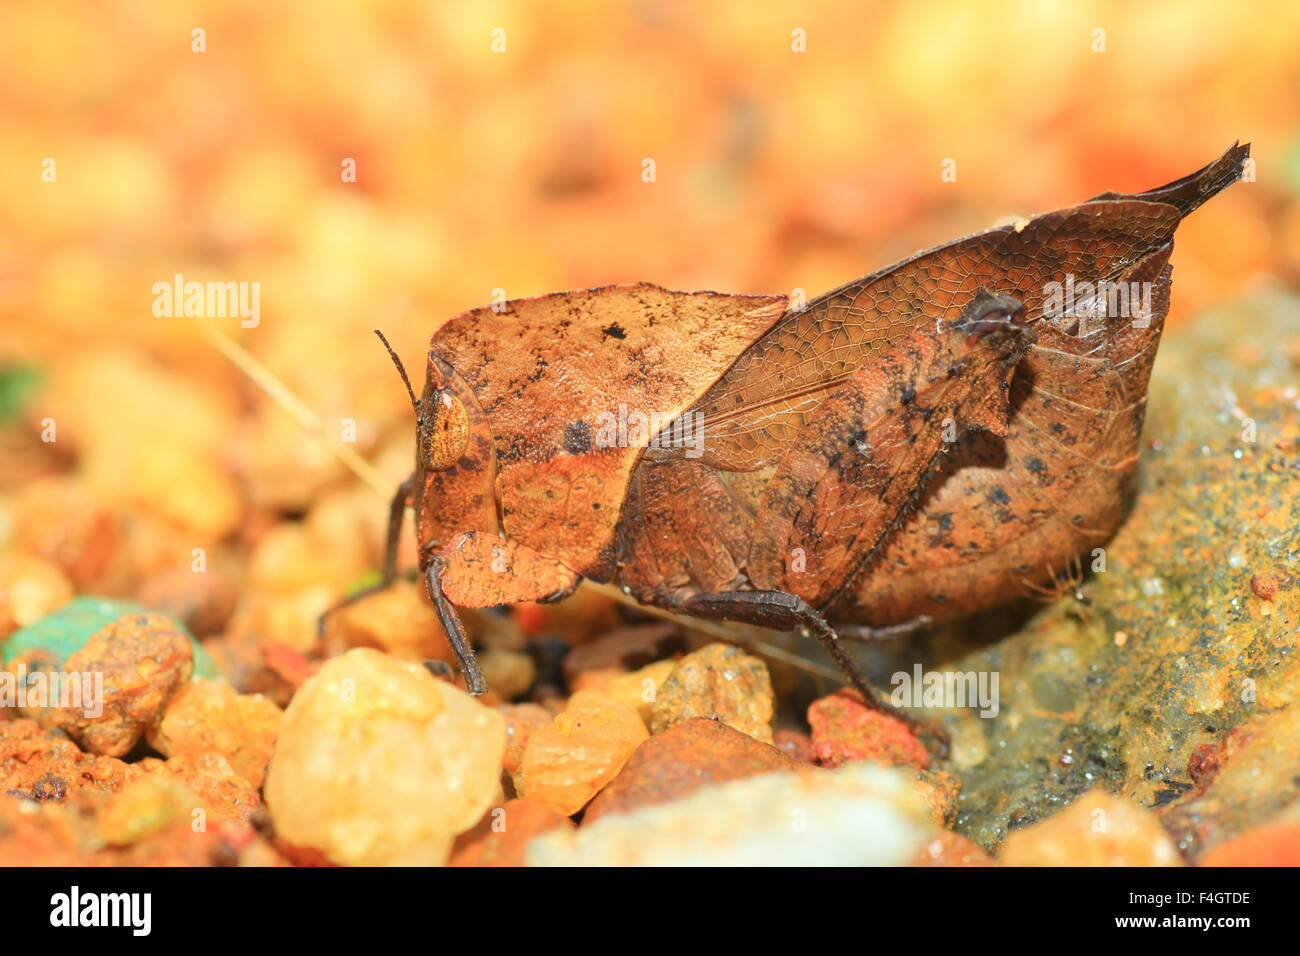 Dead Leaf mimicry Grasshopper (Chorotypus sp) in Sinharaja Forest Reserve, Sri lanka - Stock Image